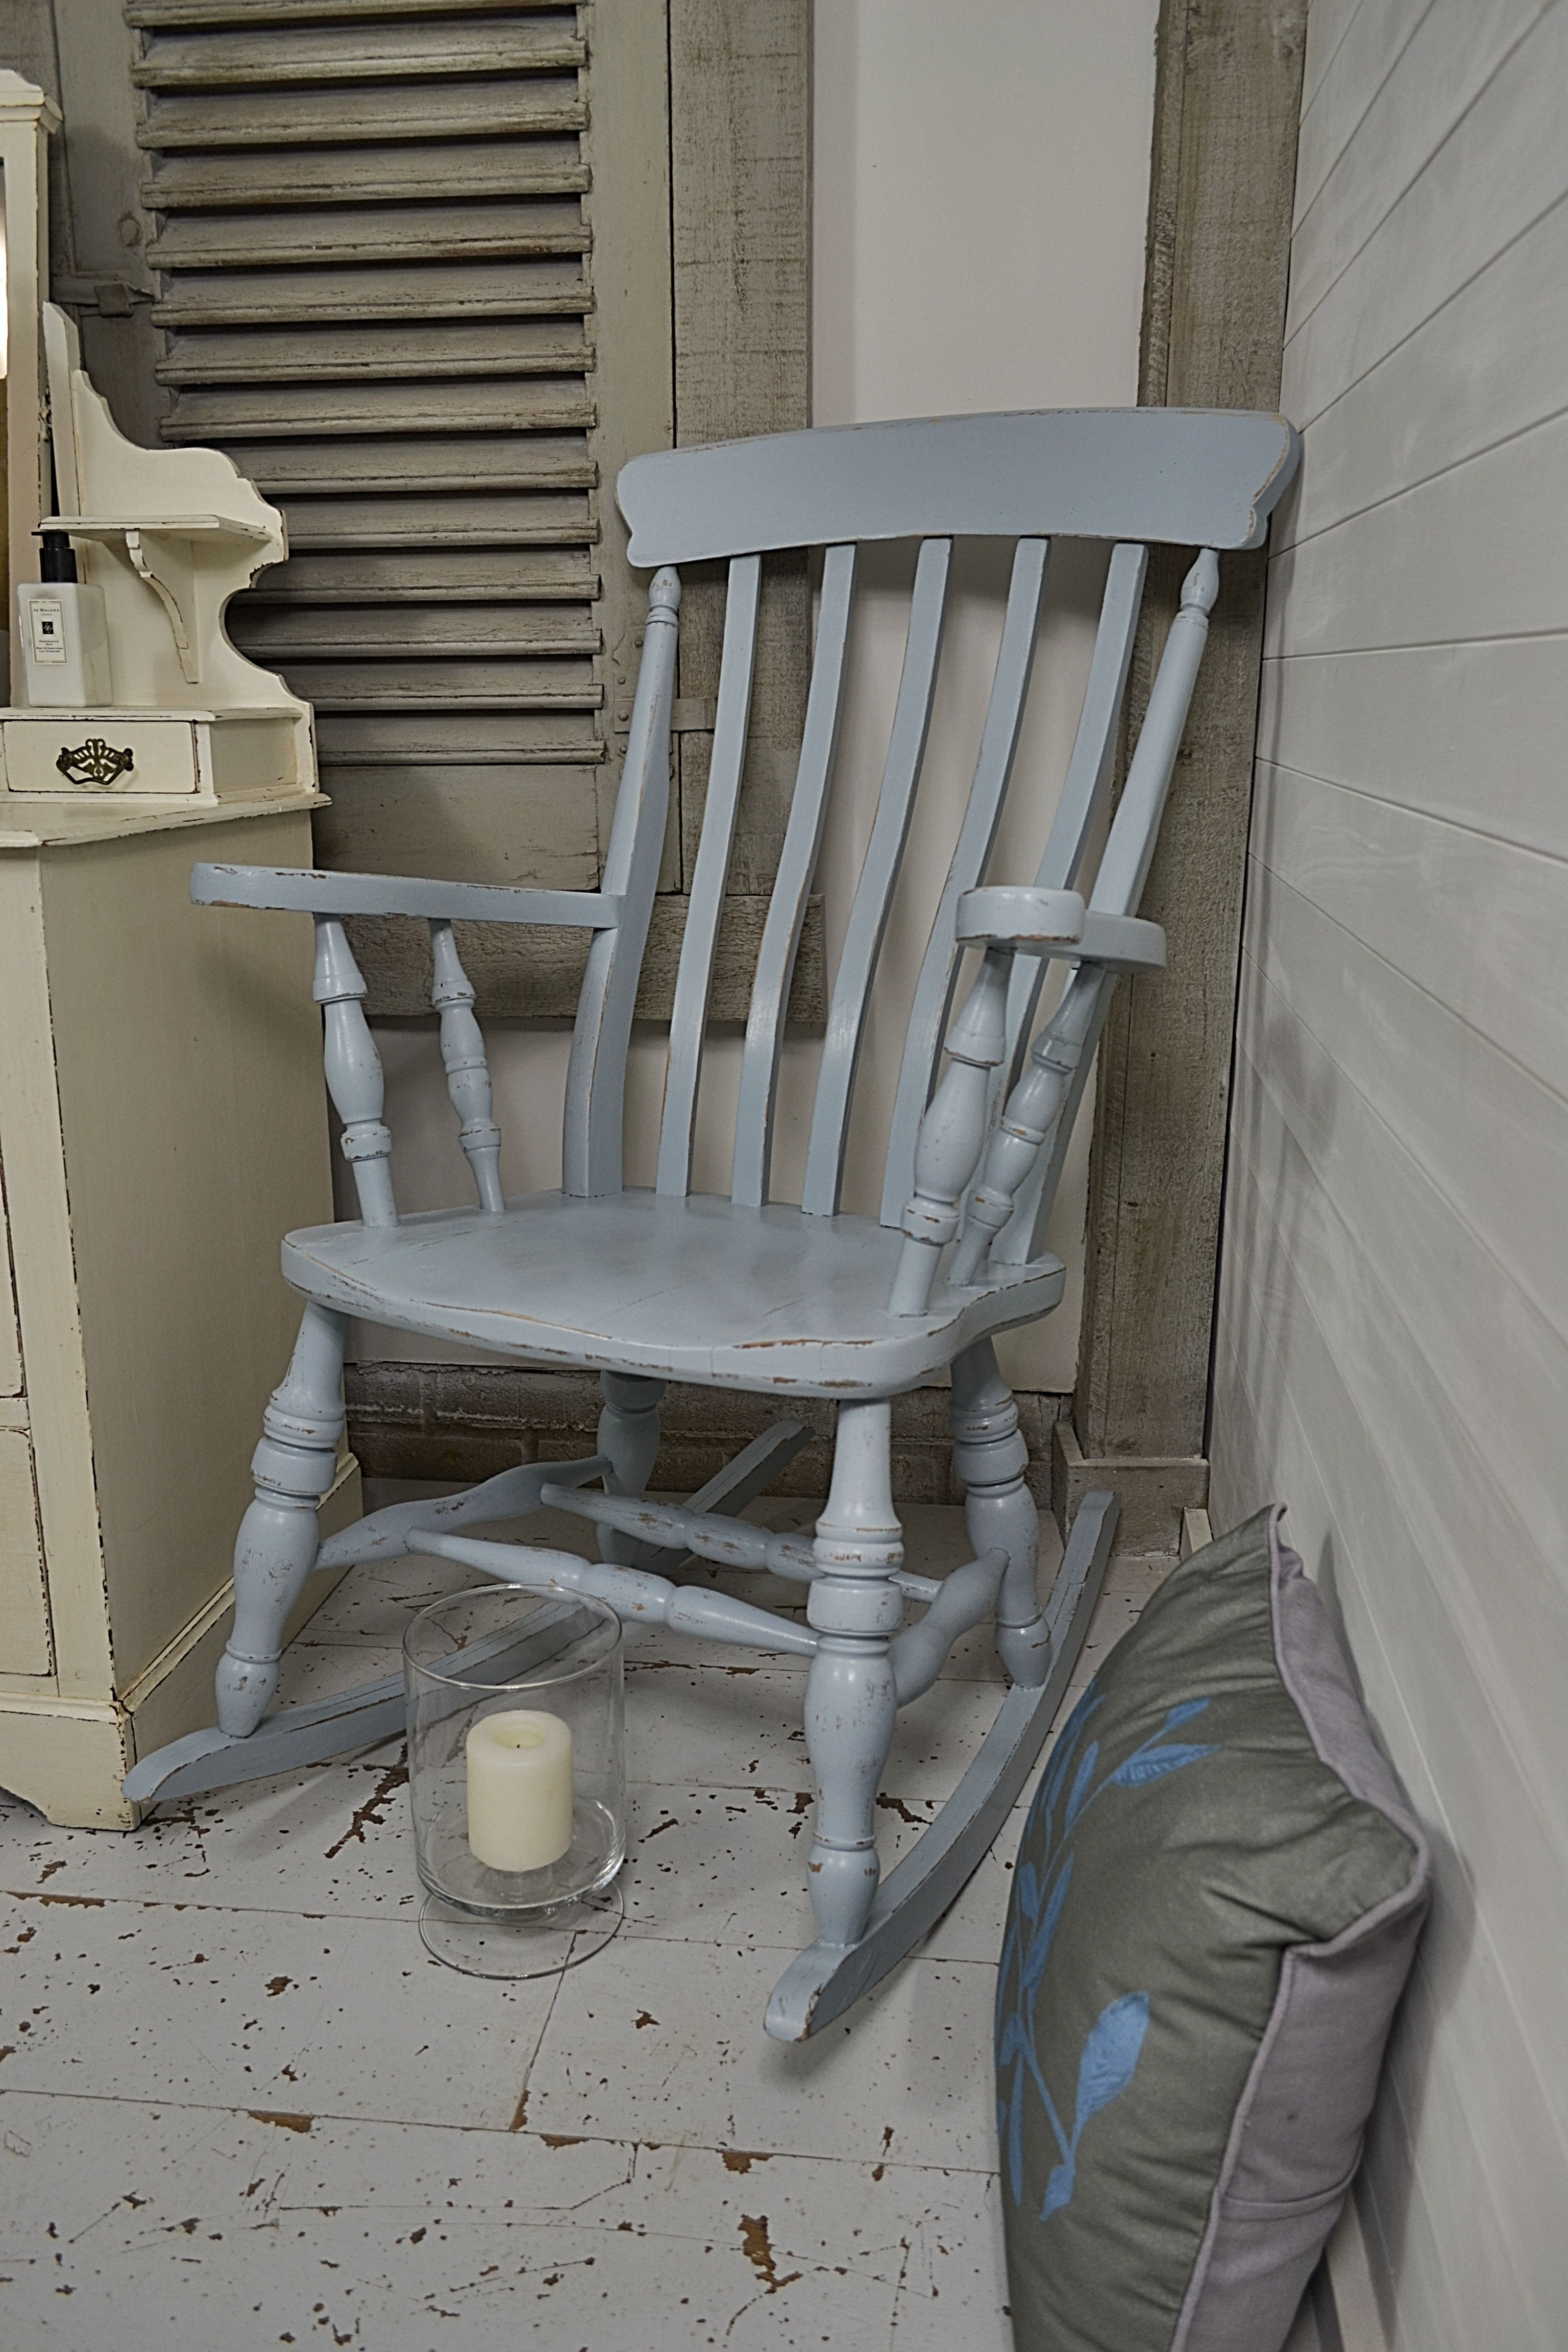 While Away A Few Hours With A Good Book On This Shabby Chic Rocking Chair,